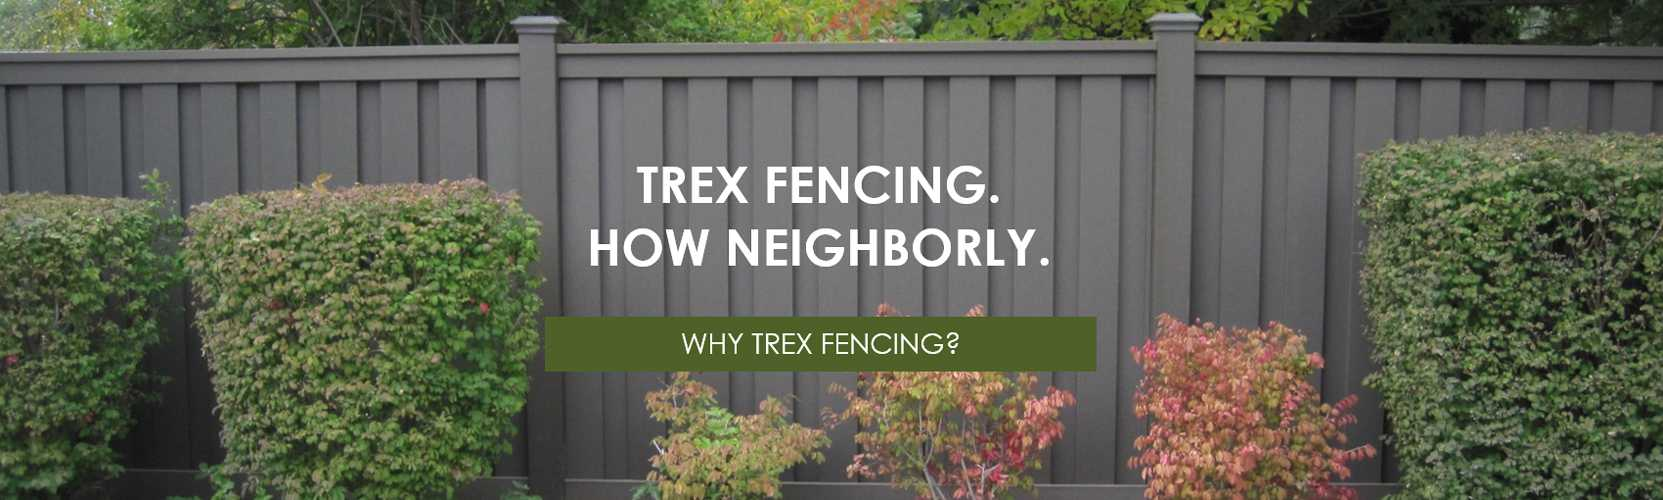 Trex Fencing, the Composite Alternative to Wood & Vinyl - Trex ... on